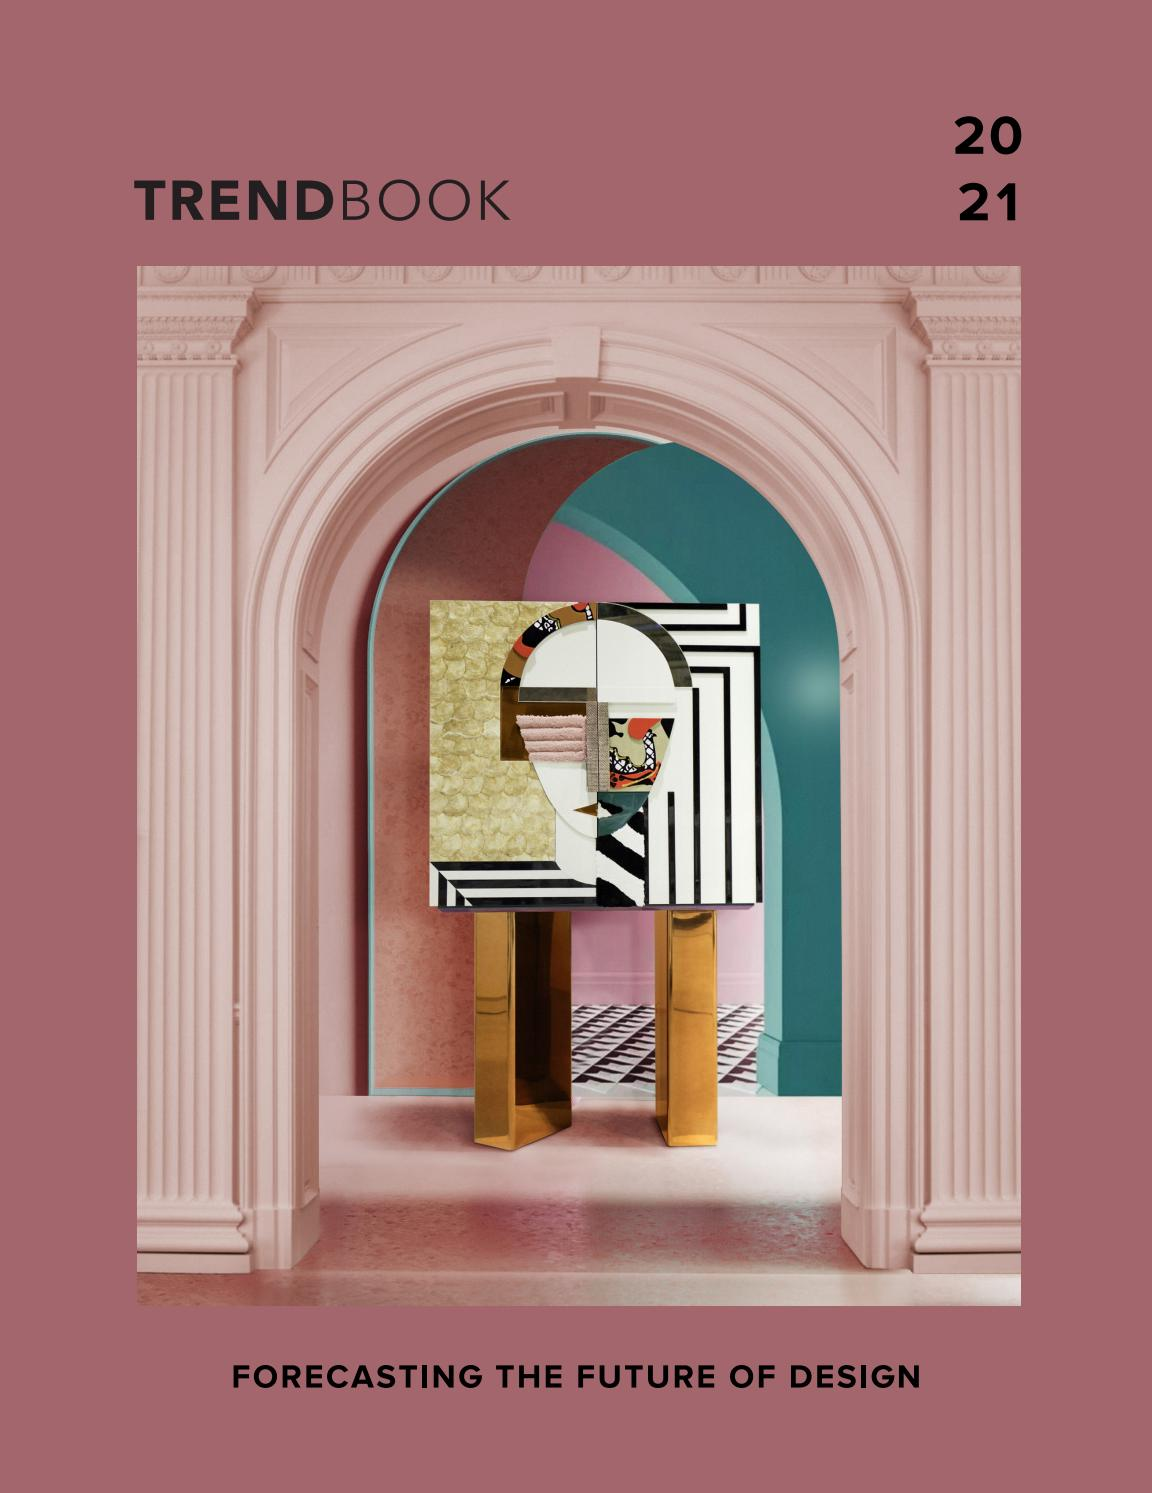 New Trendbook 2021 Trend Forecast Home Interiors By Trend Design Book Issuu